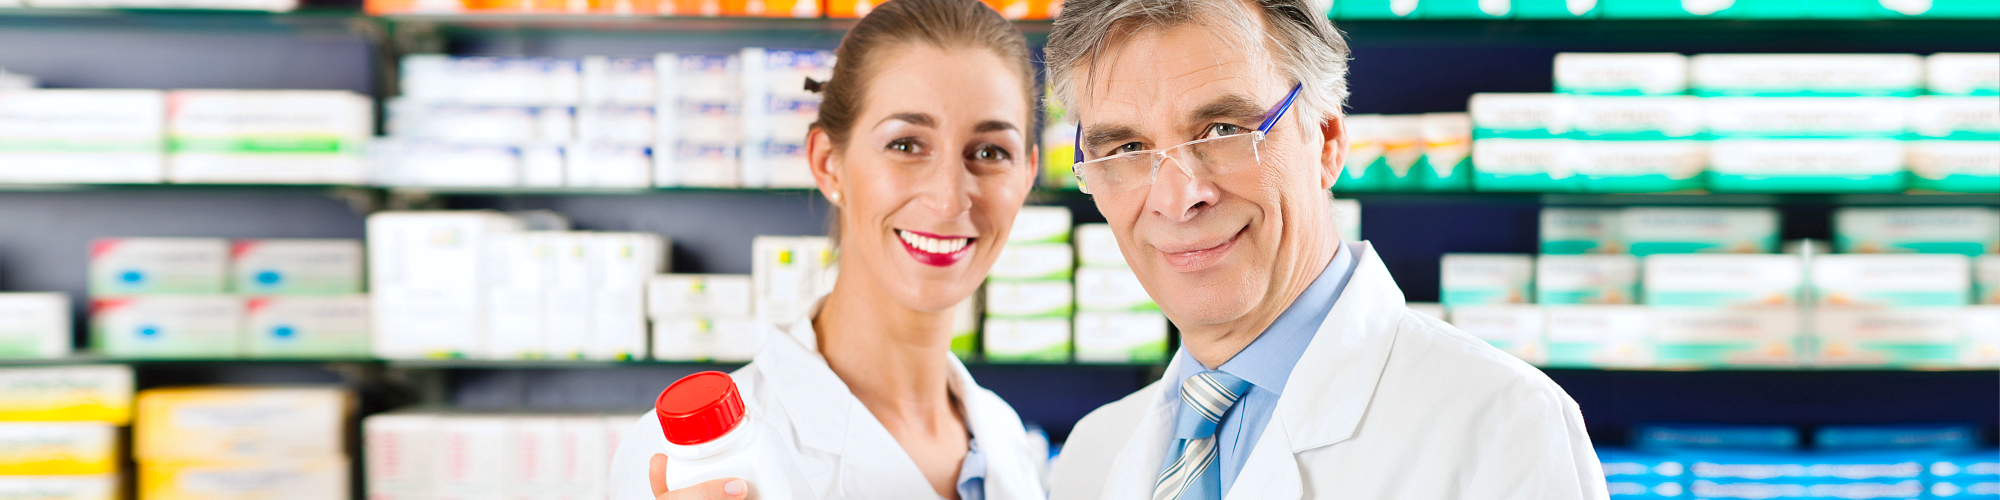 woman and man pharmacist smiling